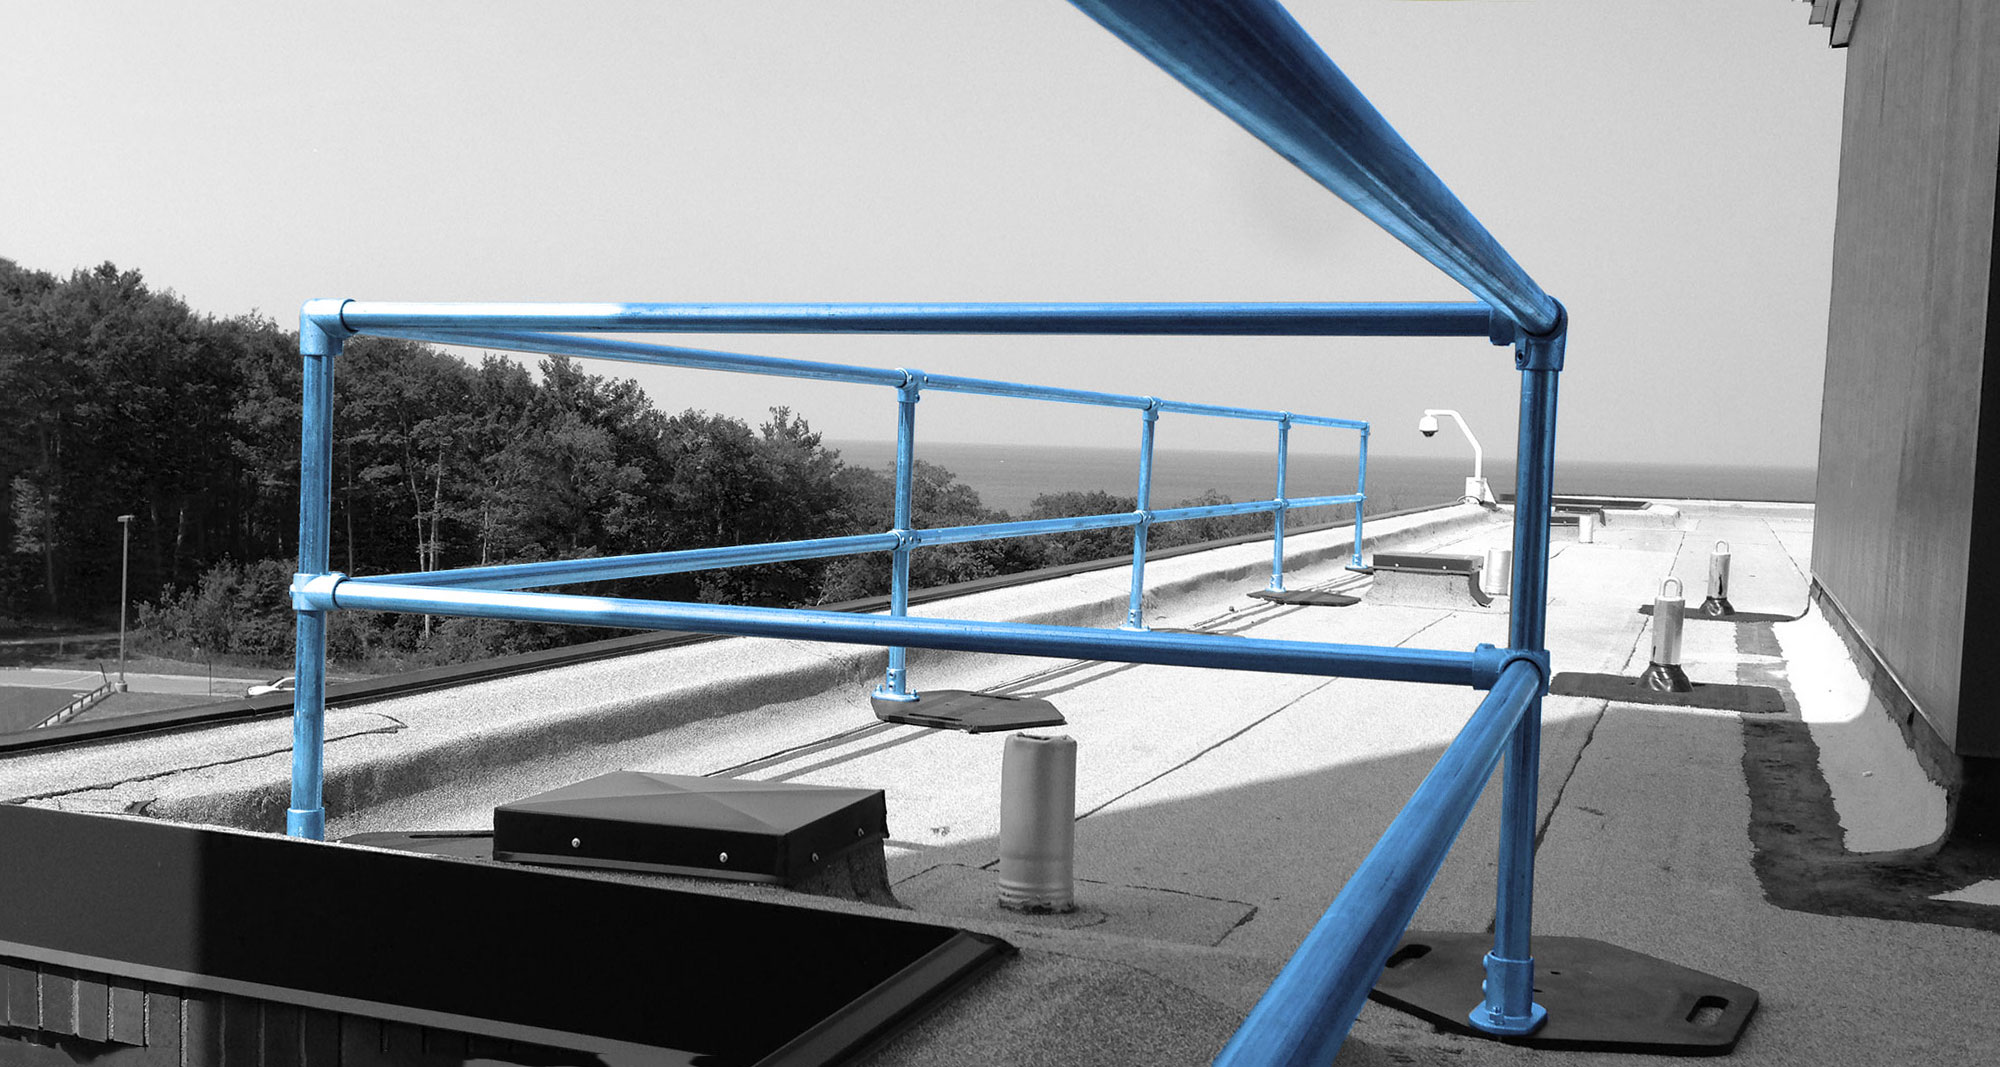 A blue guard rail on top of a warehouse. For more fall protection industry news, follow the Skyline FP blog.